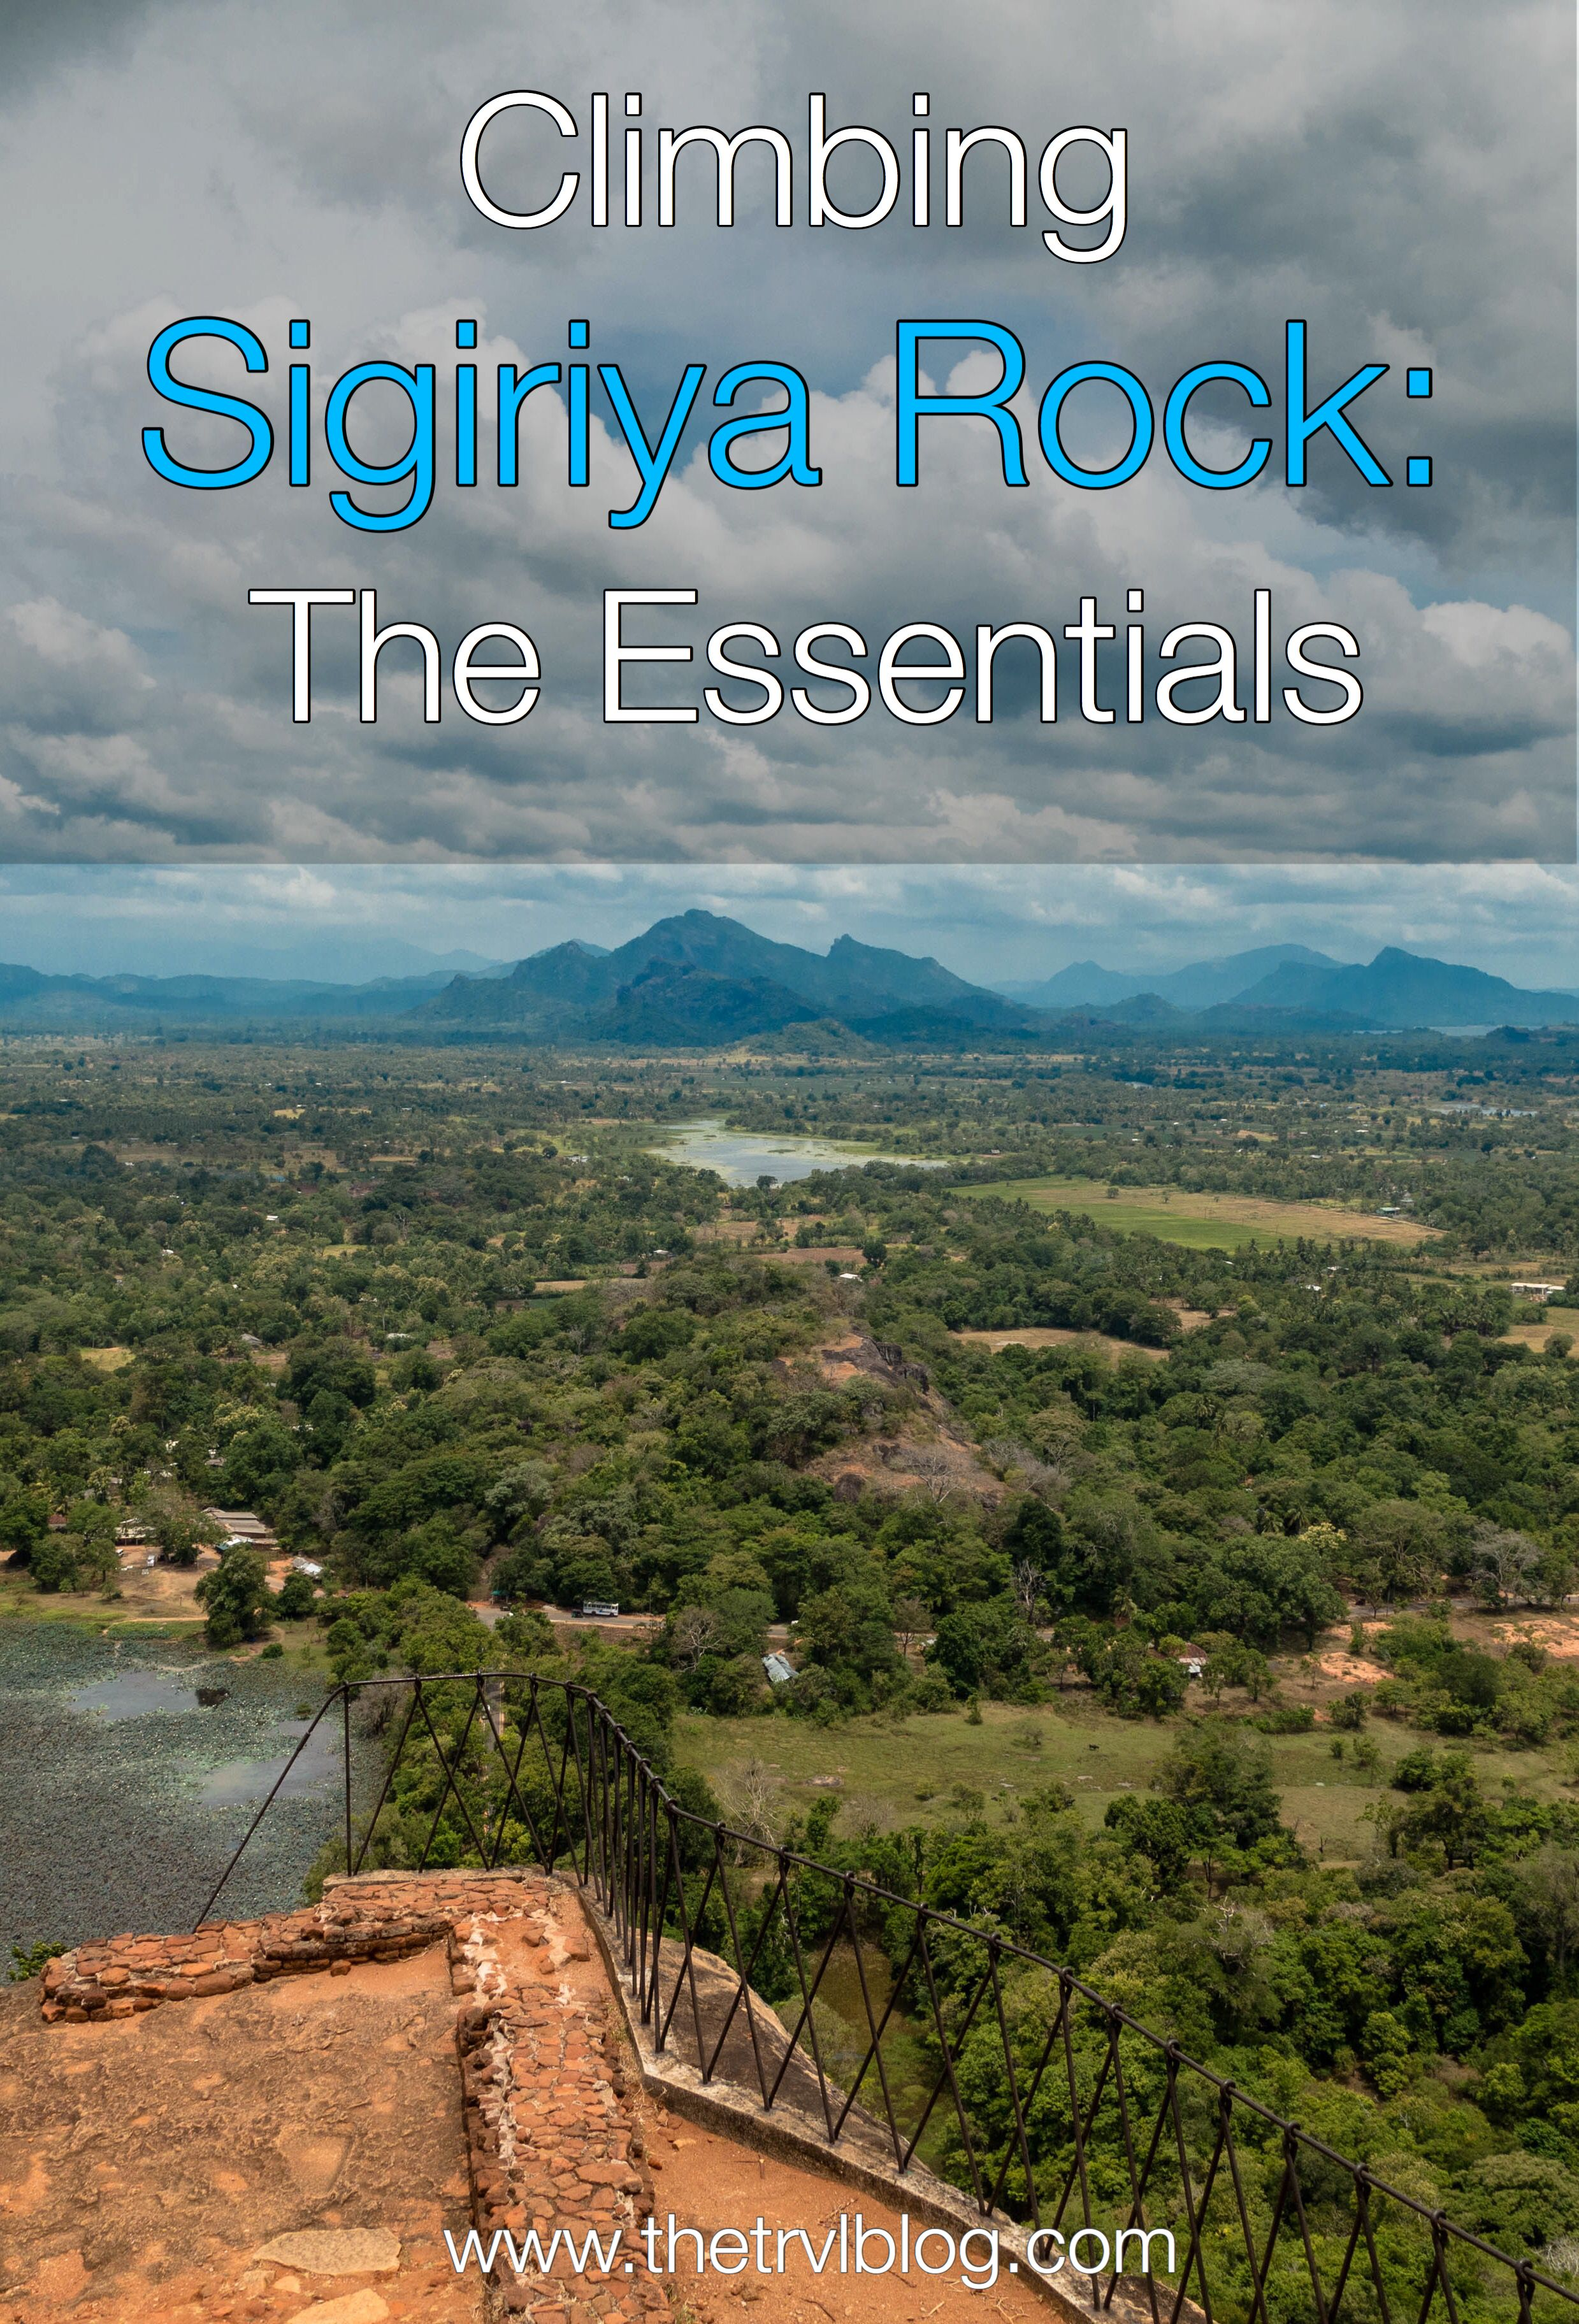 Located in the Matale district in the Central Province of Sri Lanka, Sigiriya Rock towers nearly 200 metres above its surroundings.